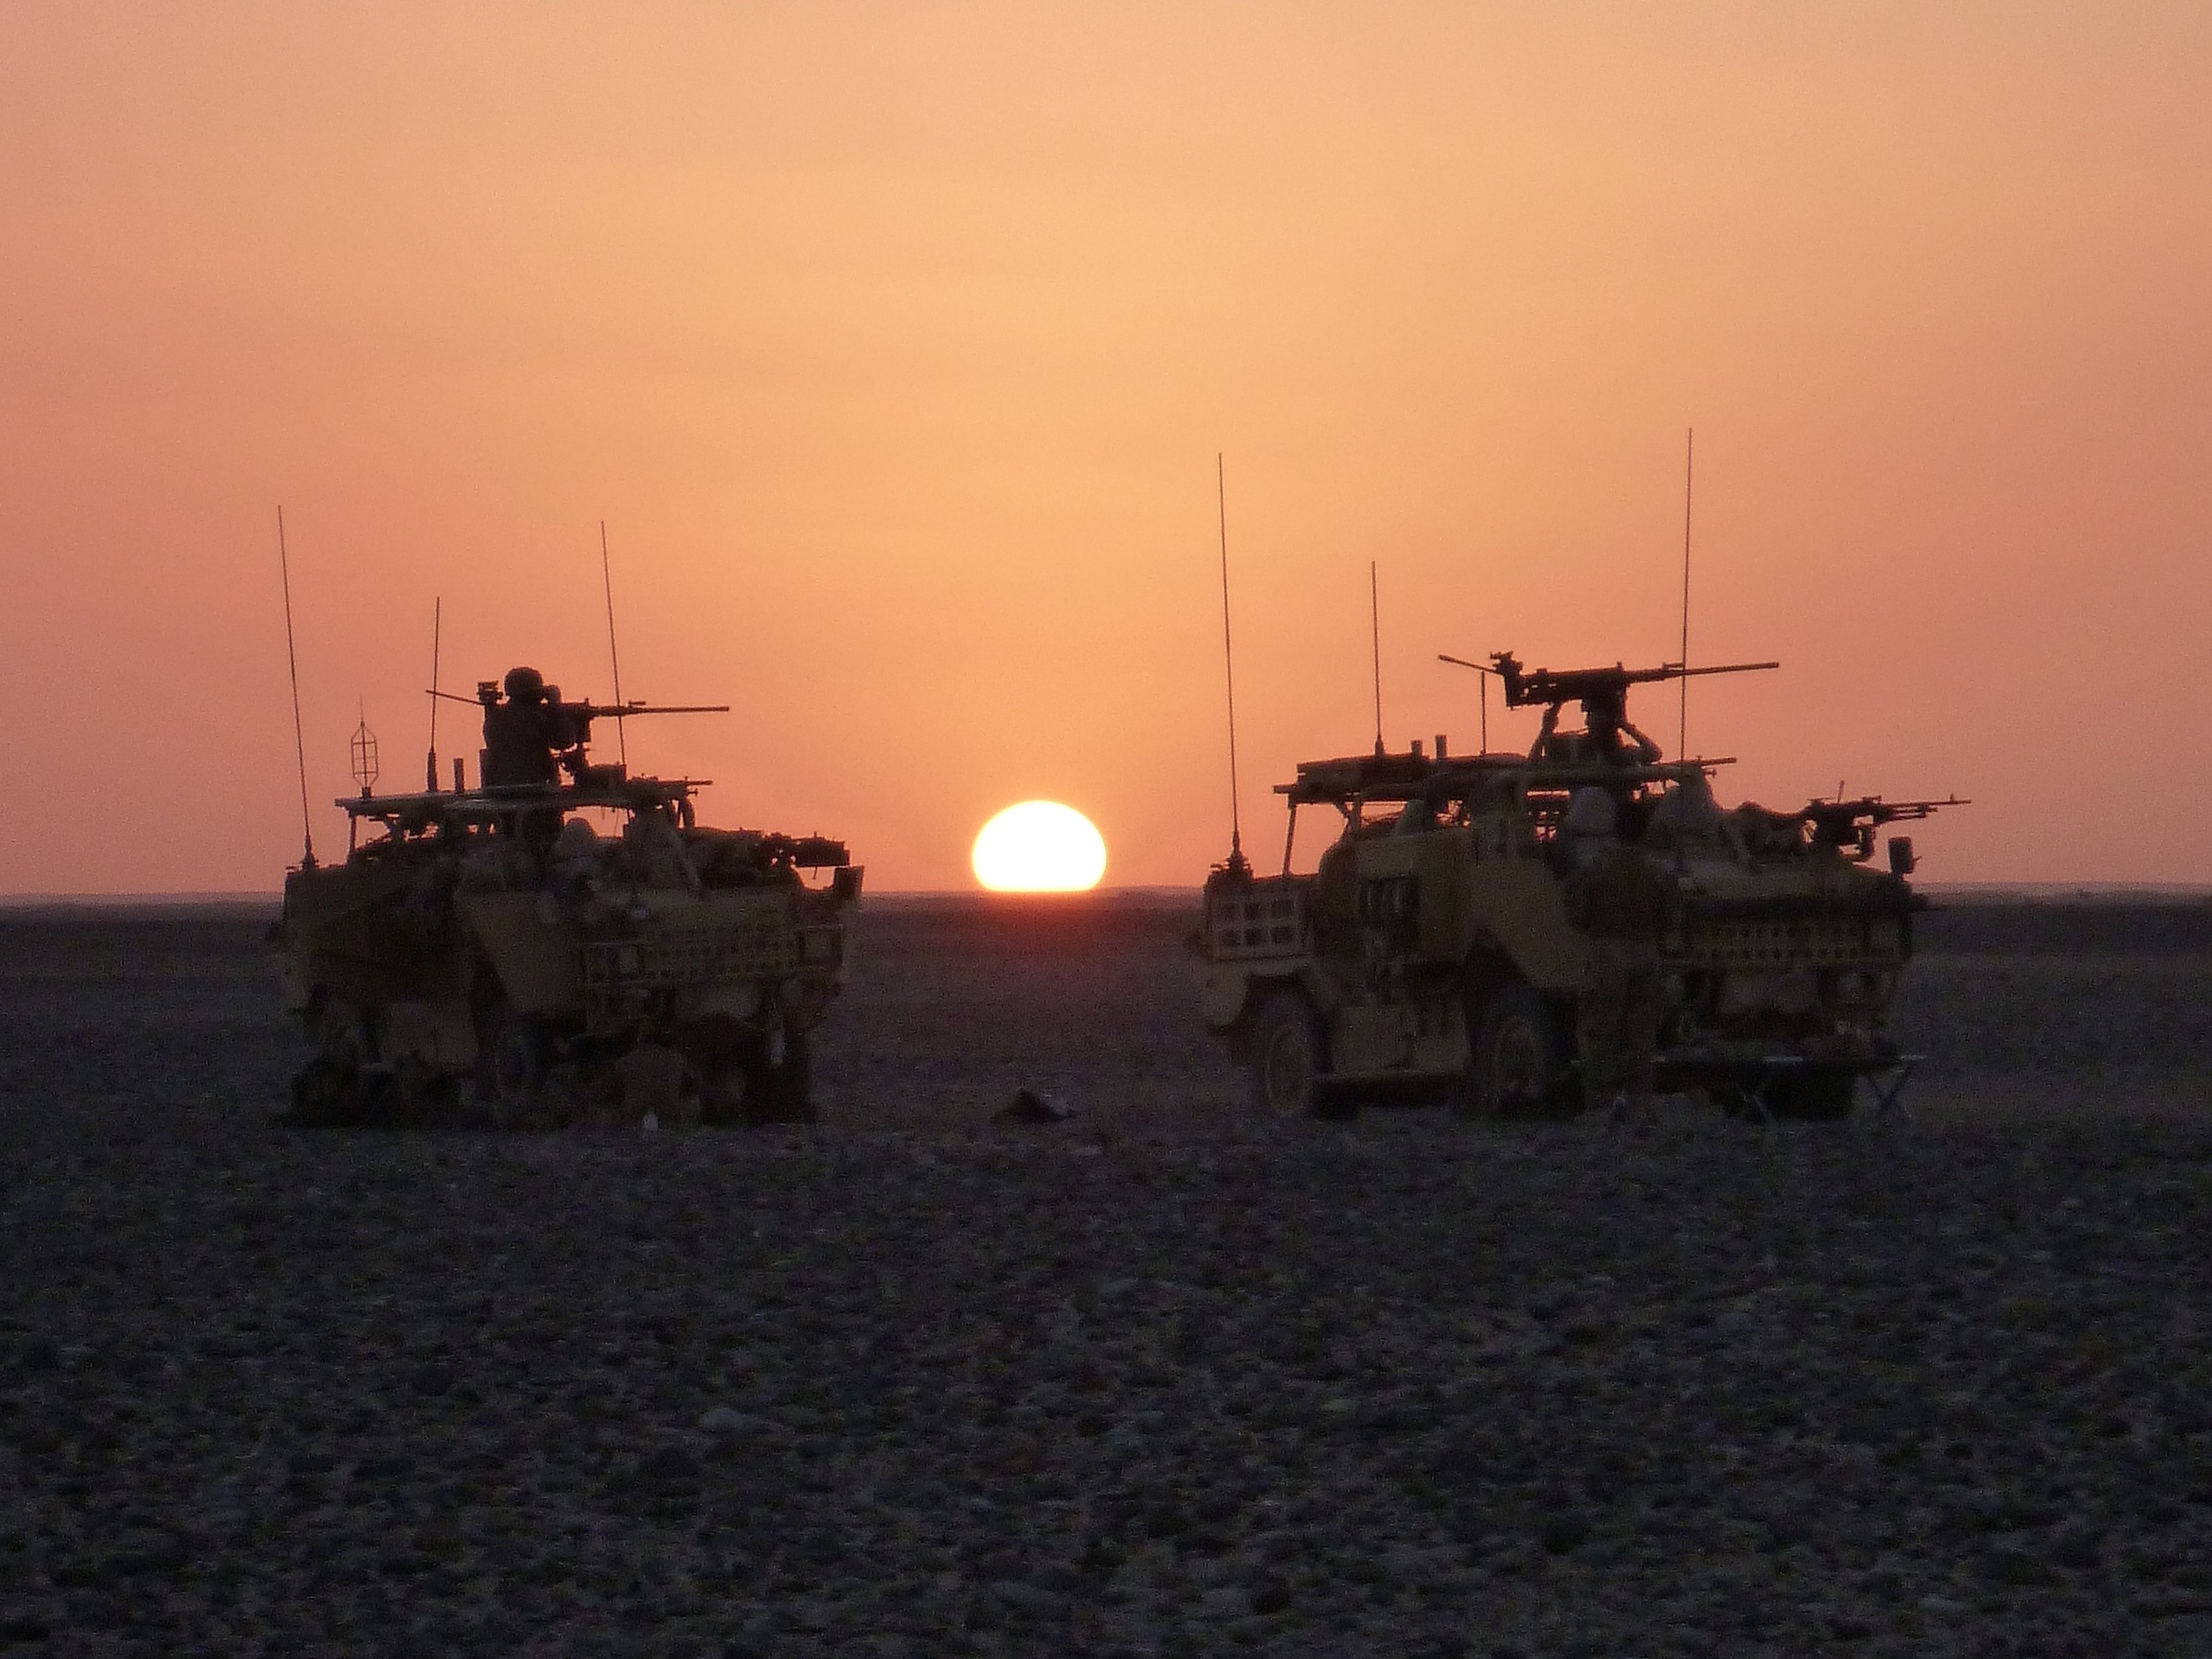 Watching the sun set in Helmand Province, Afghanistan.